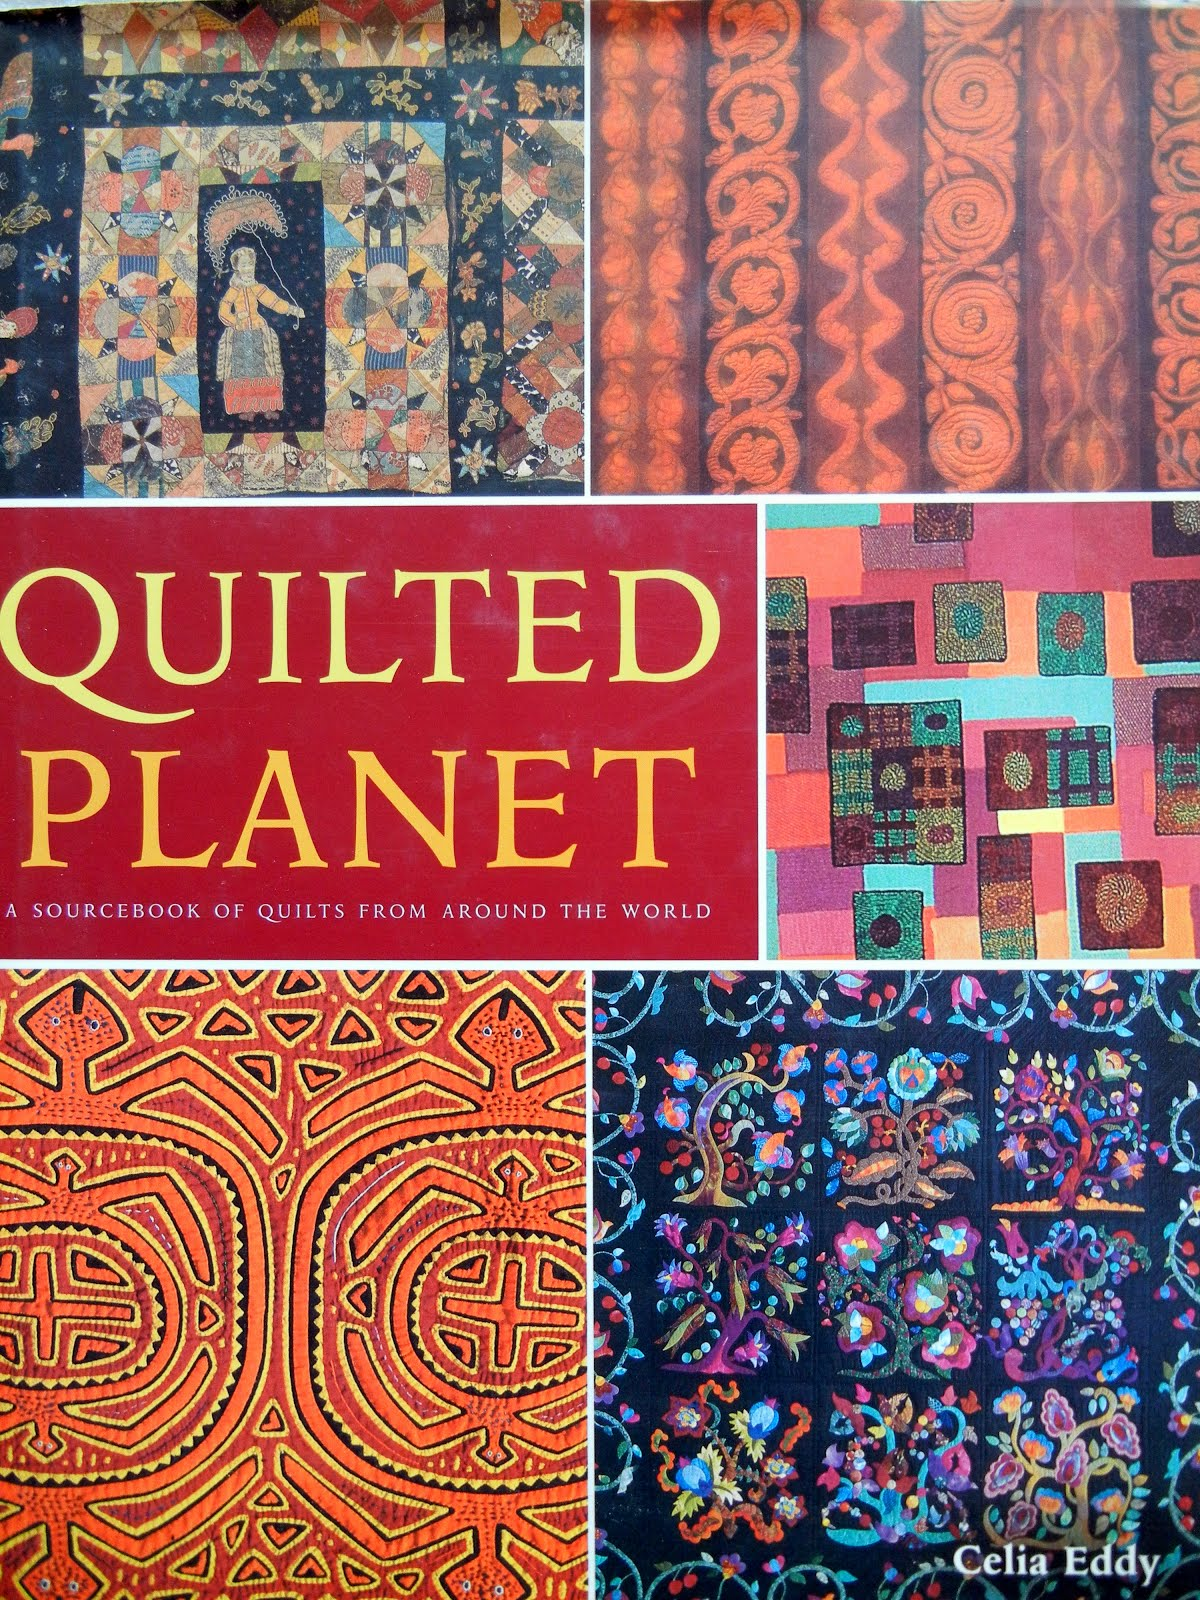 A Sourcebook of quilts from around the world!